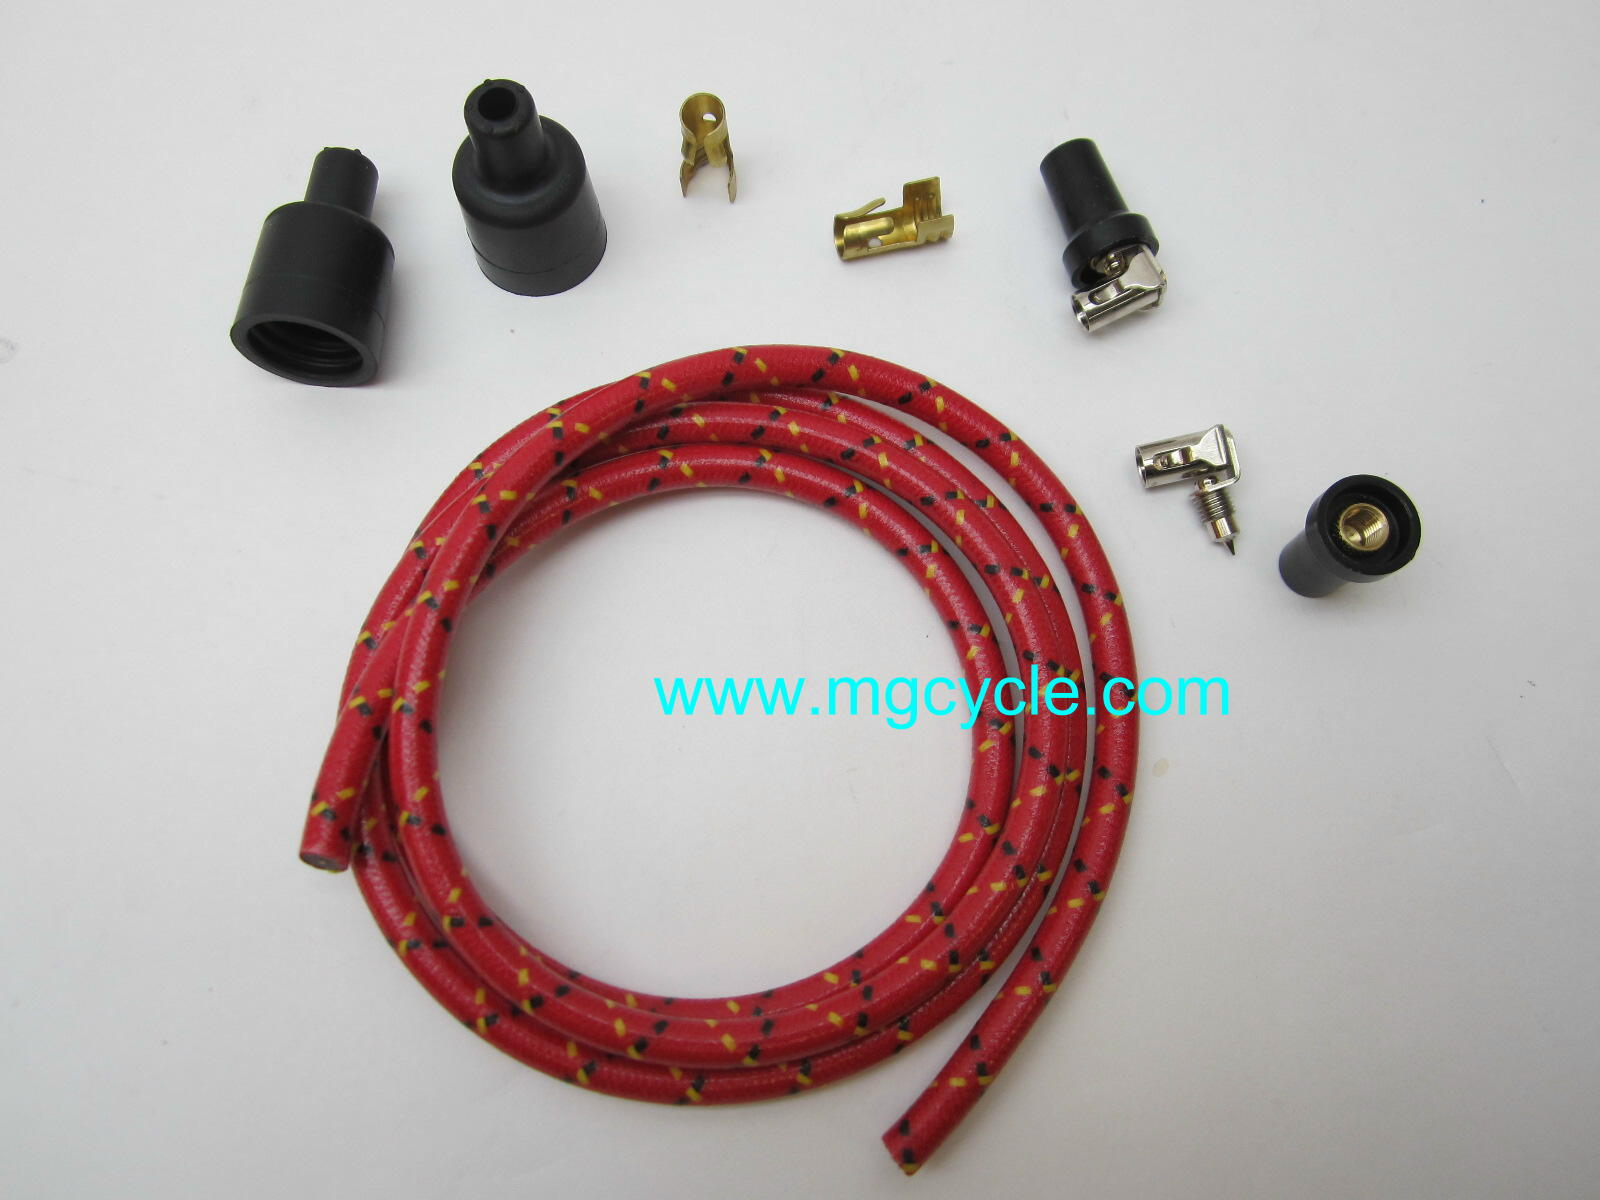 cloth covered spark plug wire set, red with black tracer